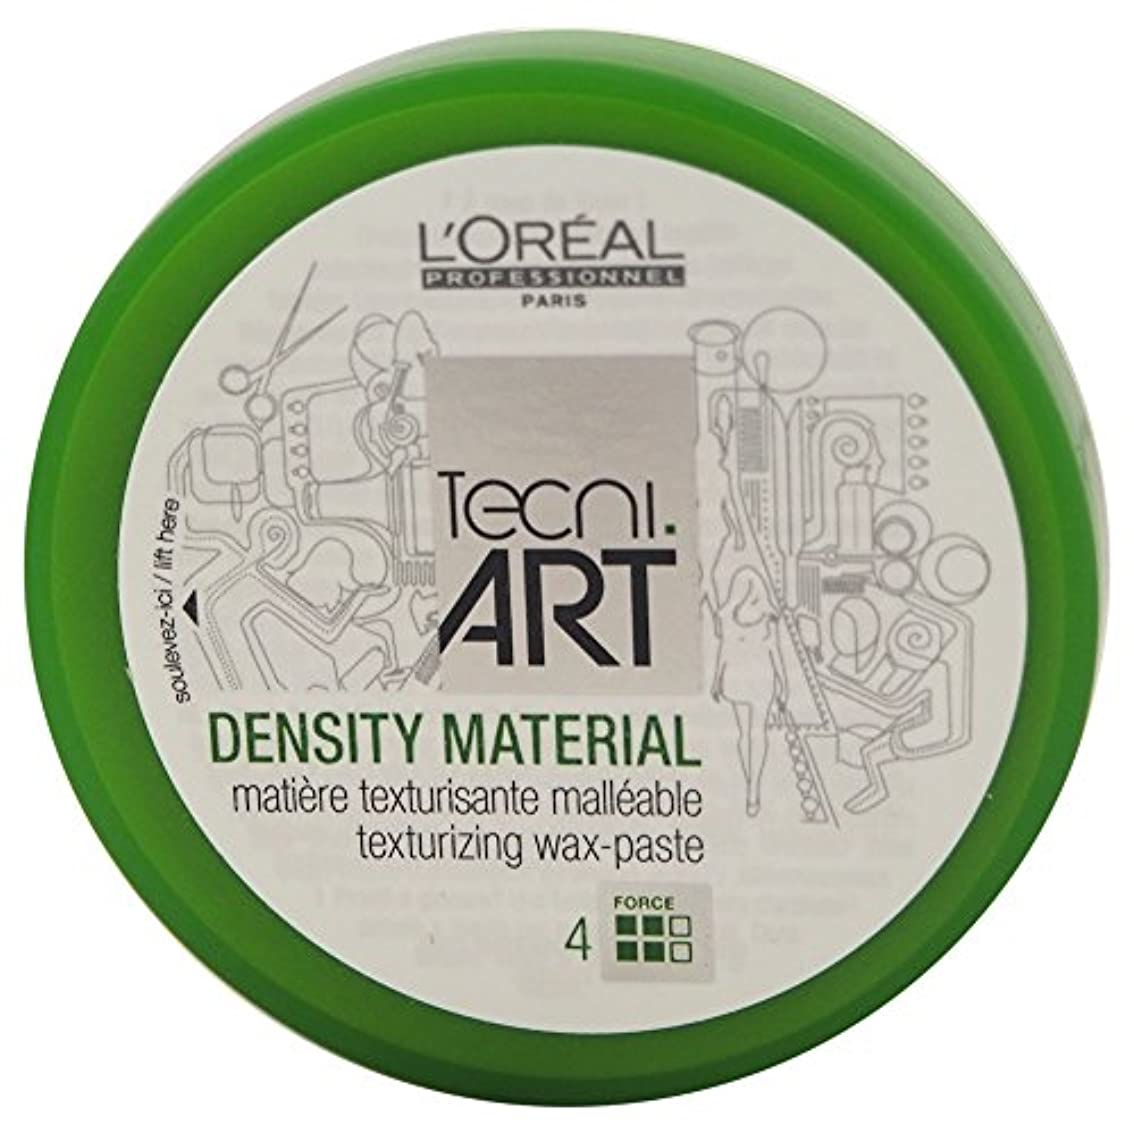 Loreal Tecni Art Density Material Force 4 Texturizing Wax Paste 100ml [並行輸入品]